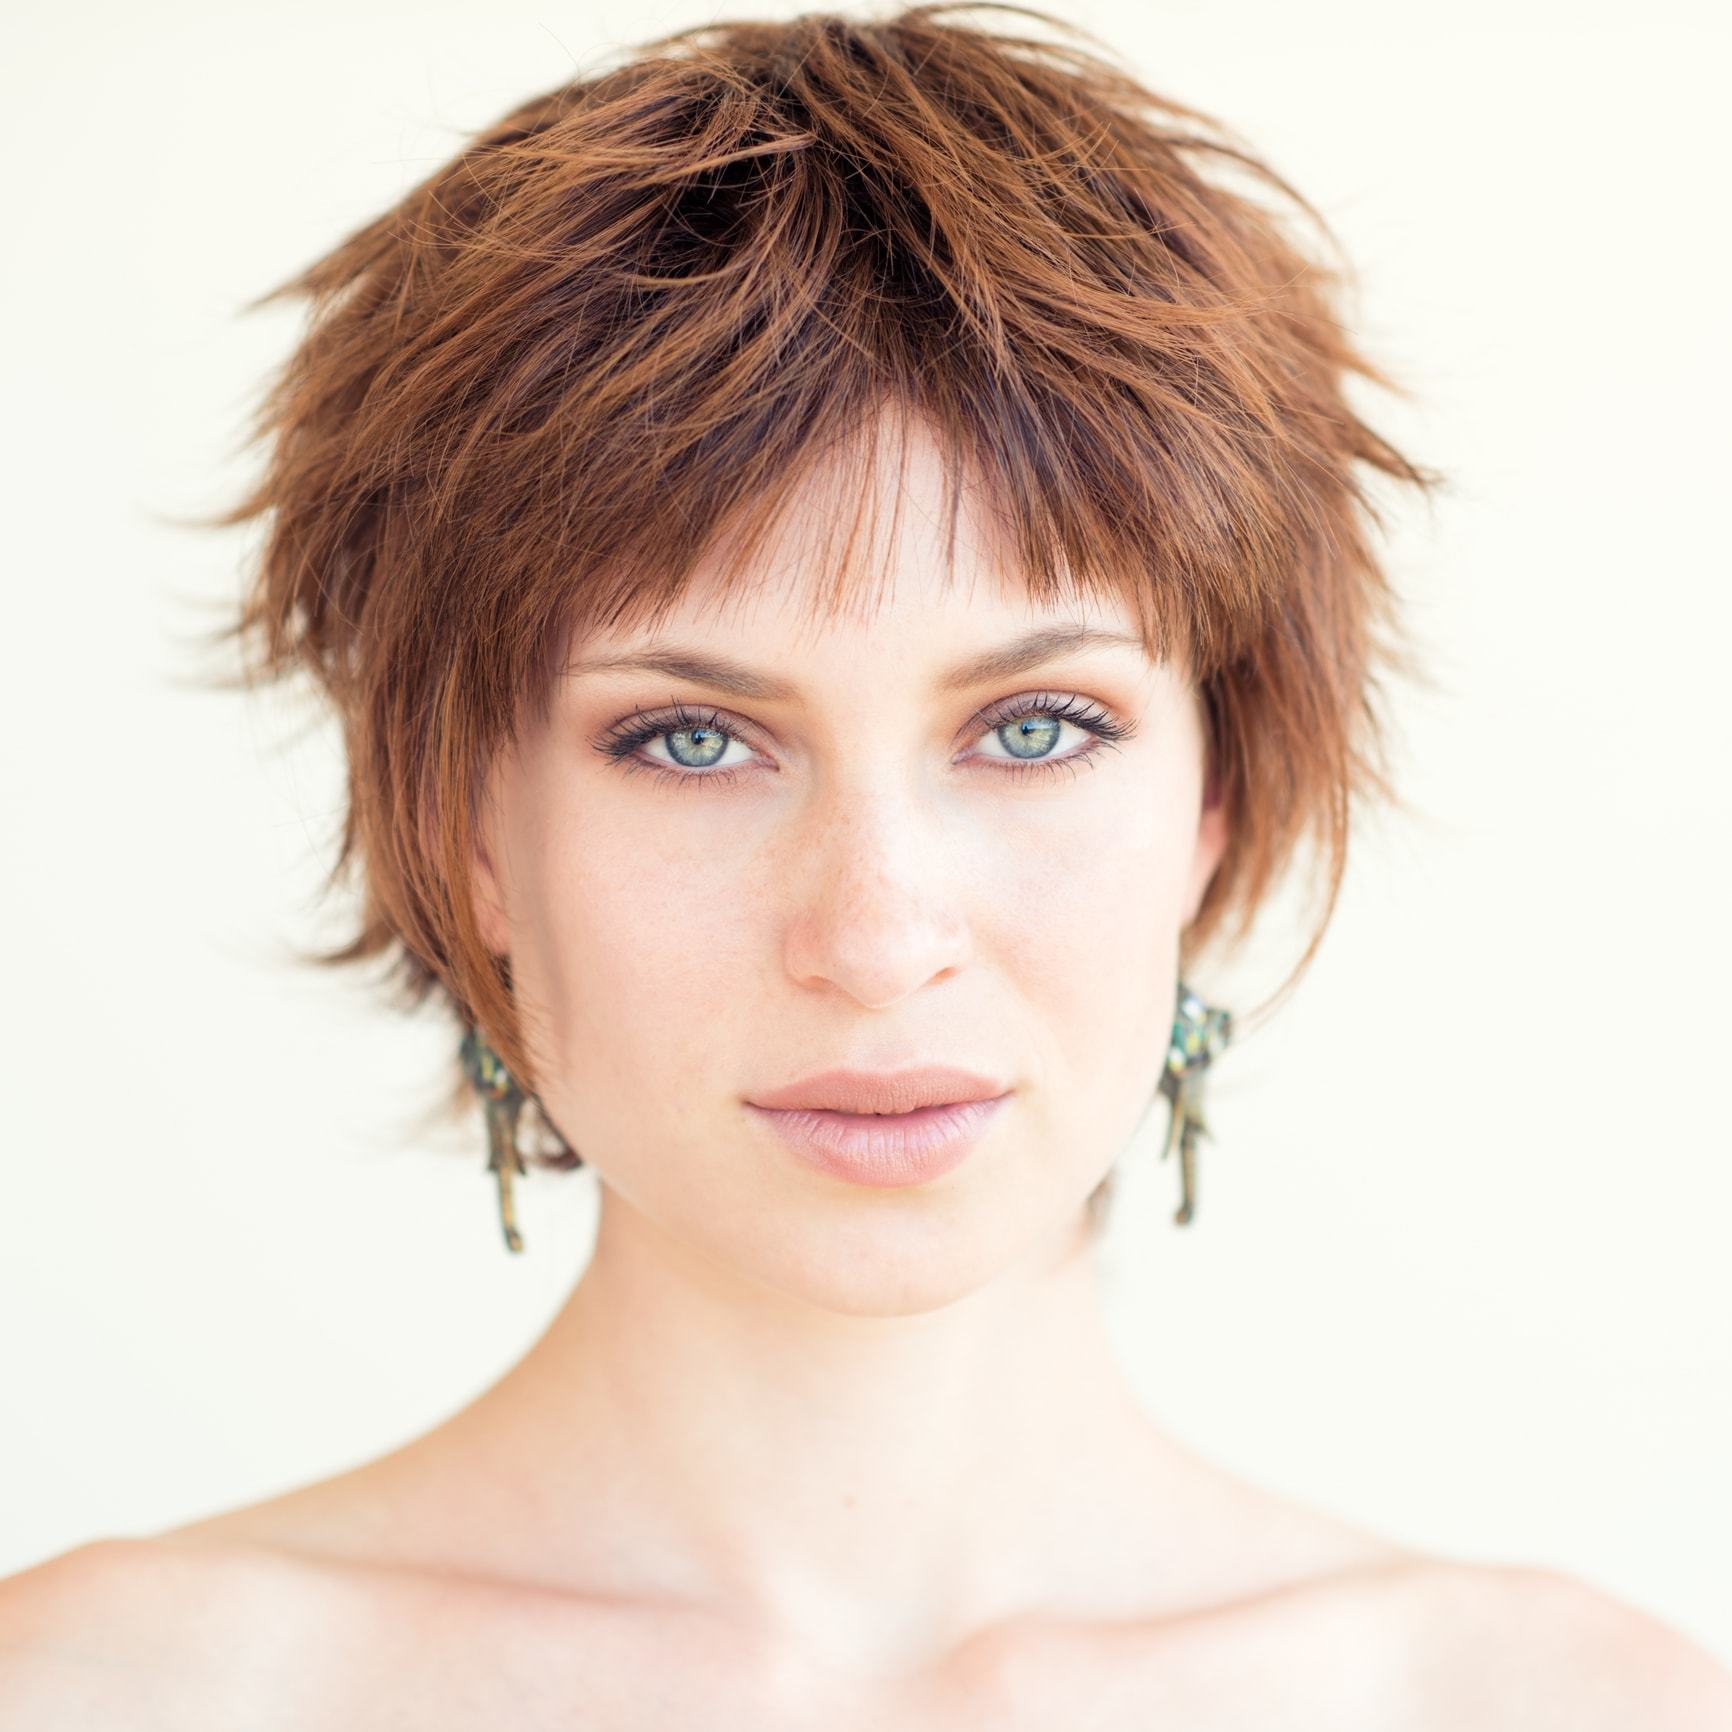 Short Funky Hairstyles 6 Quirky Looks To Love Right Now